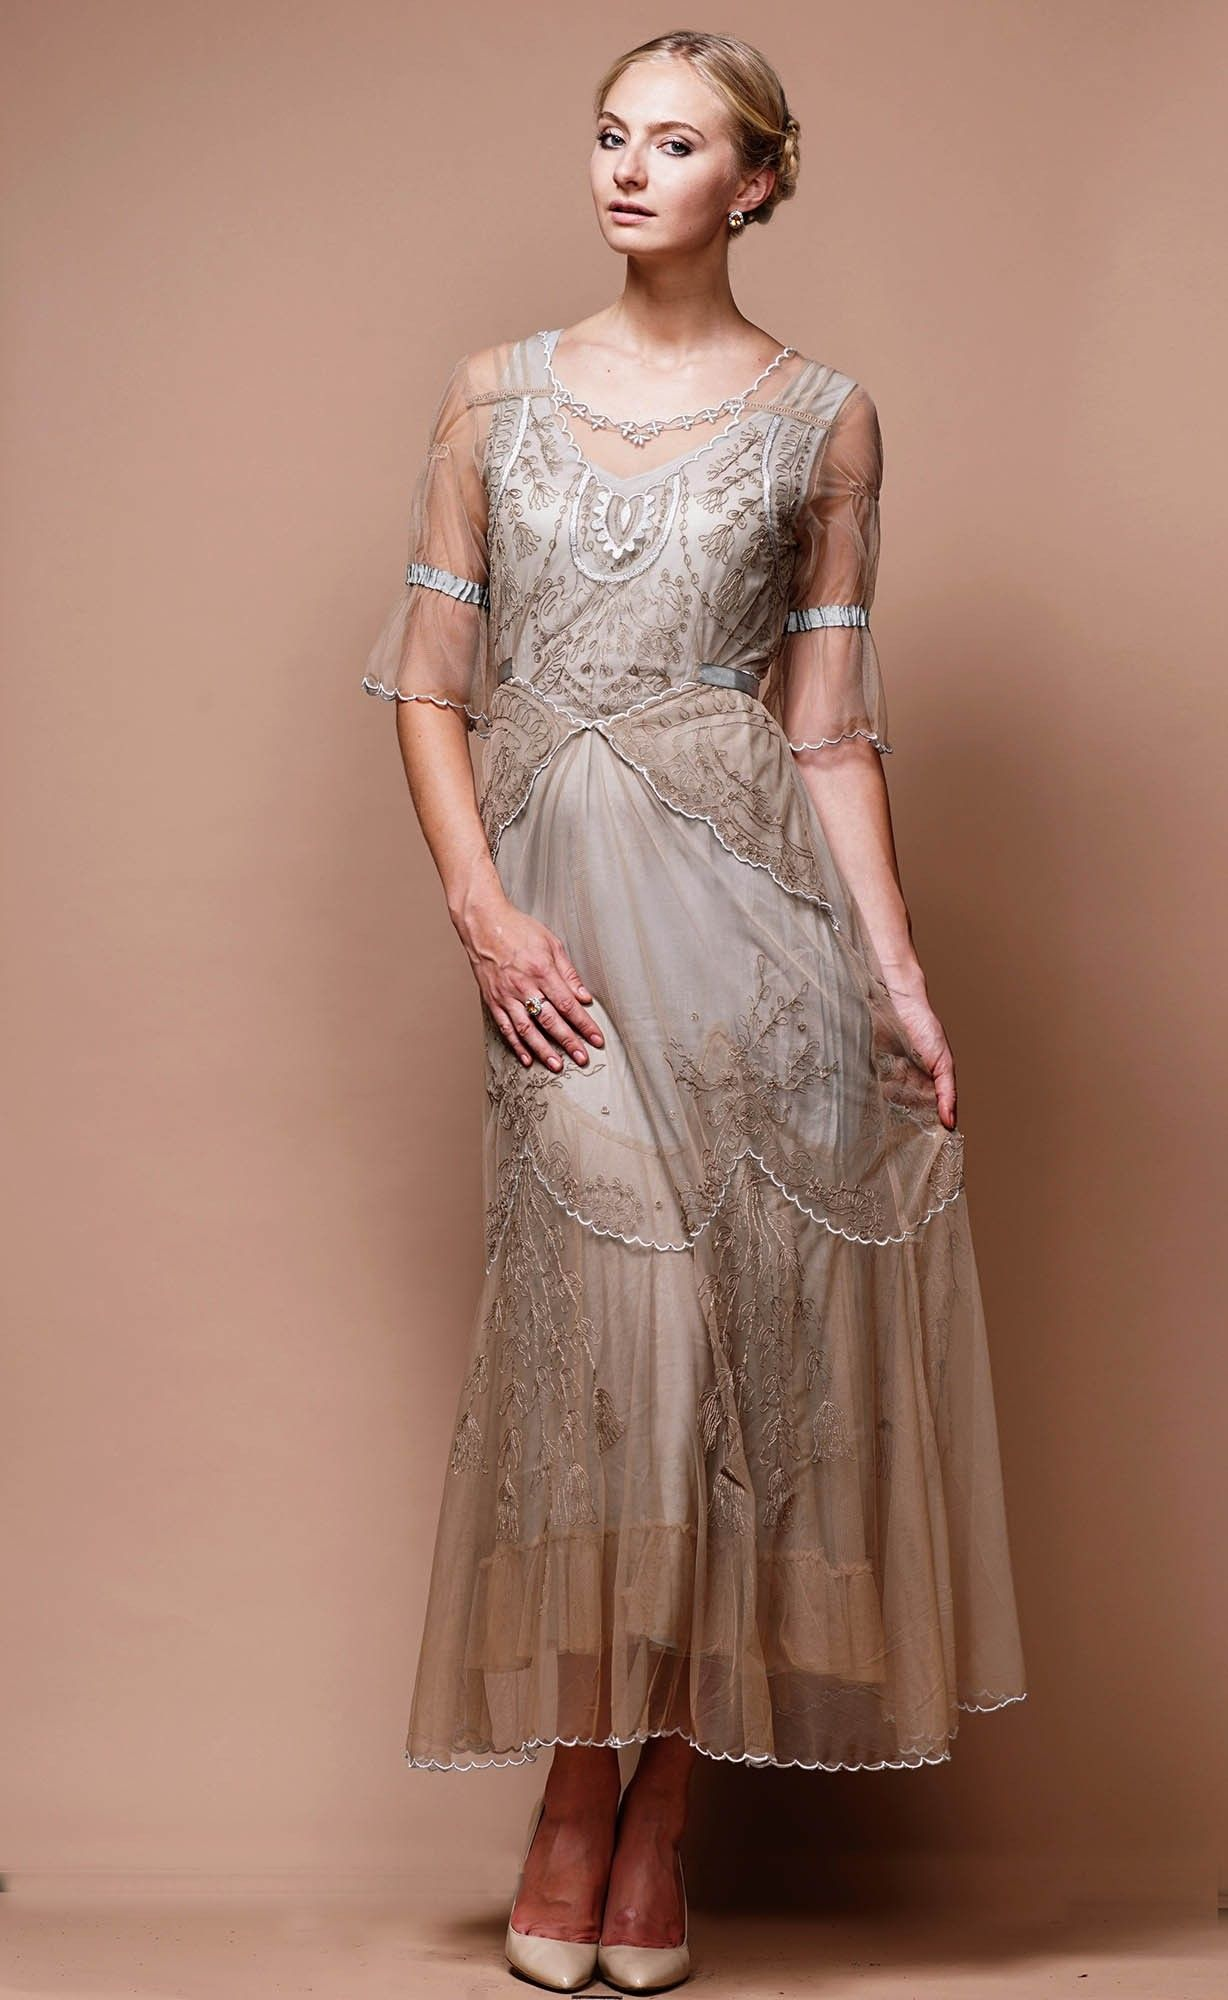 Edwardian Vintage Inspired Wedding Dress In Sand Silver By Nataya Sold Out Vintage Inspired Wedding Dresses Nataya Dress Edwardian Fashion Dresses [ 2000 x 1228 Pixel ]